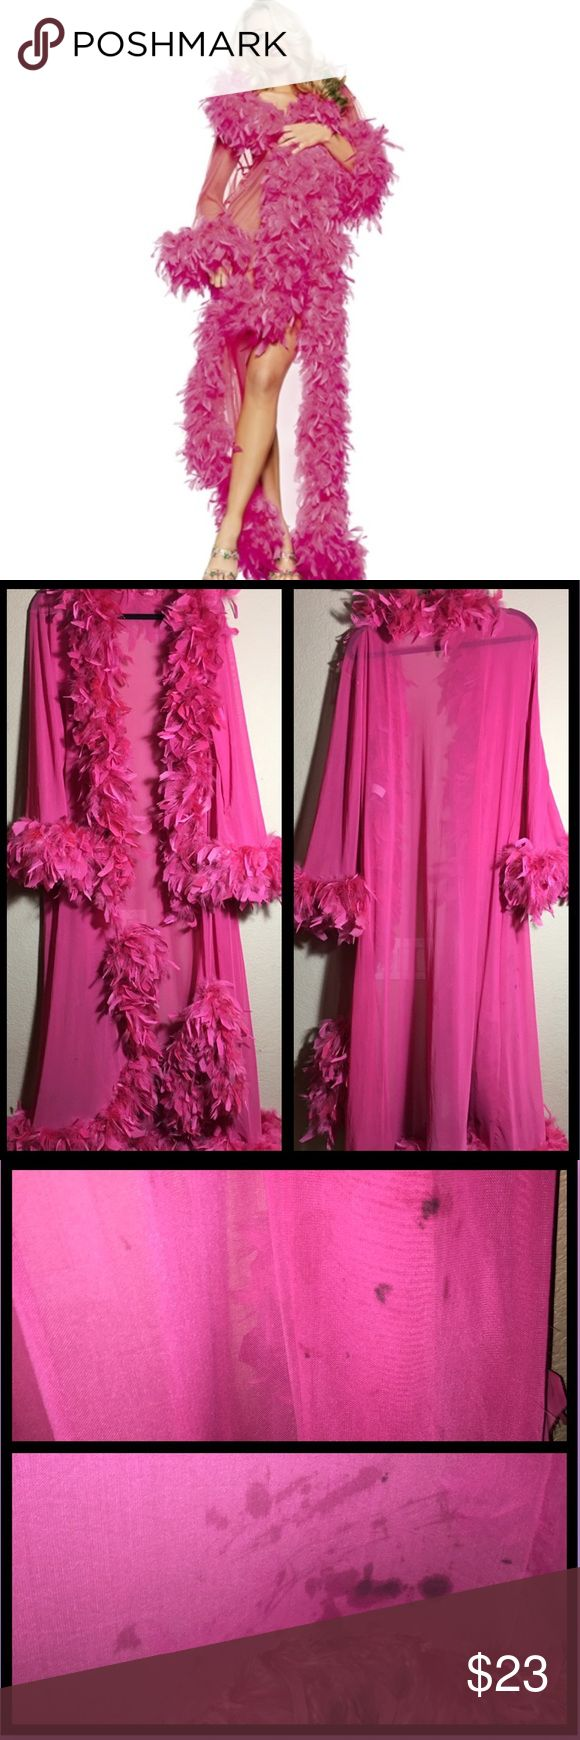 Be Wicked! Long Robe w/Chandelle Boa Good used condition. Two spots on the front the boa needs to be tacked down. Small dark spots on back of right hip and stains on the back bottom hem (was used as part of a Halloween horror nights costume).                         No Trades, No Holds                     Bundle for a discount.            Offers welcome, everything must go                            by March 2017! be Wicked! Intimates & Sleepwear Robes